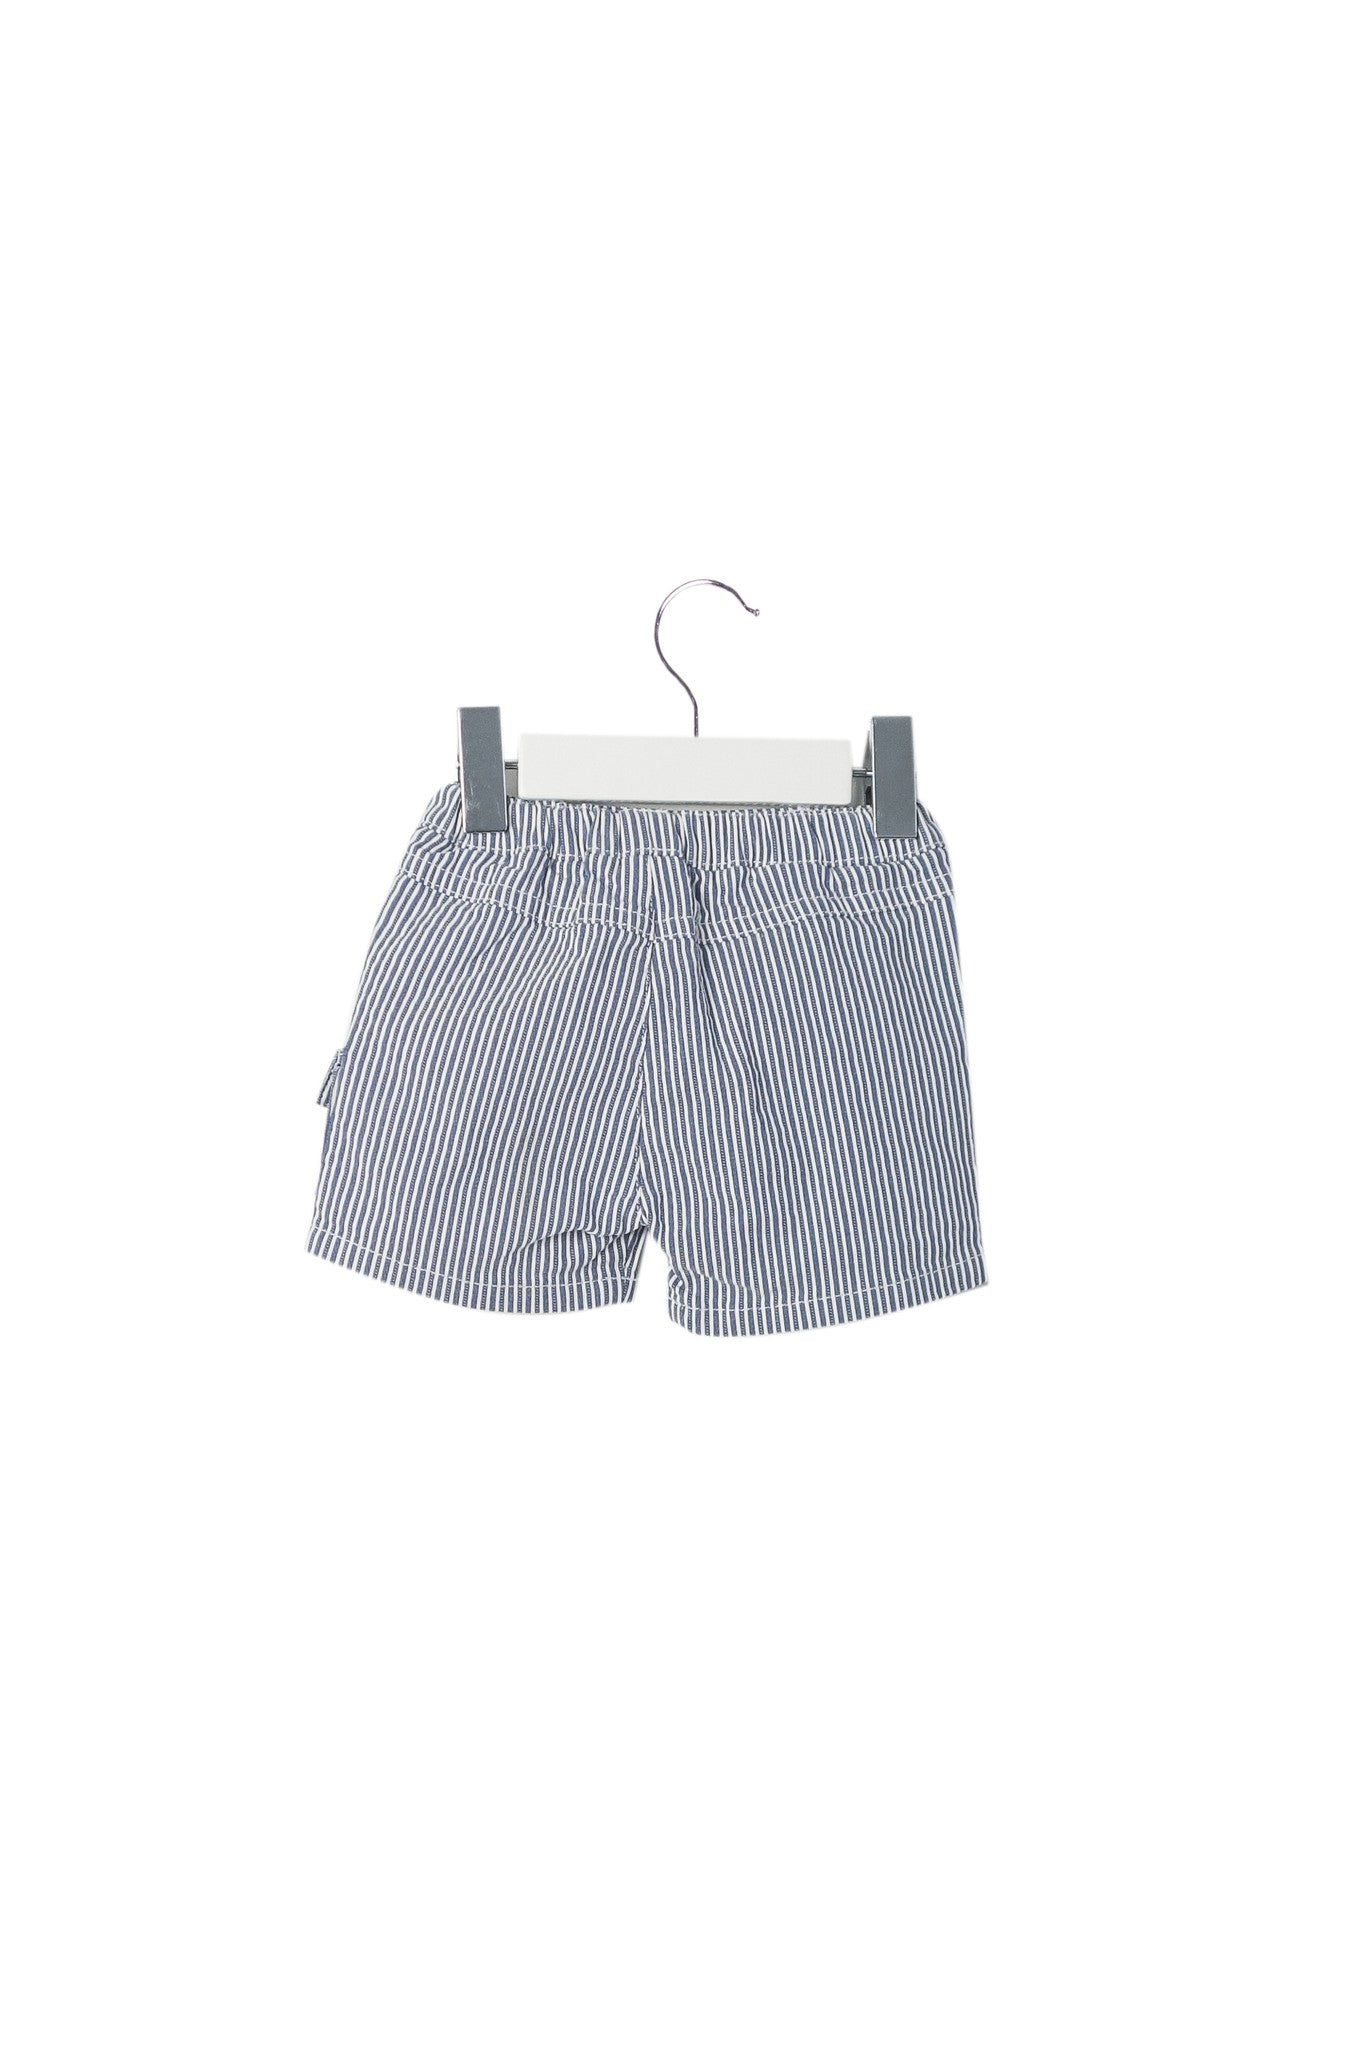 10003408 Tartine et Chocolate Baby~Shorts 9M at Retykle